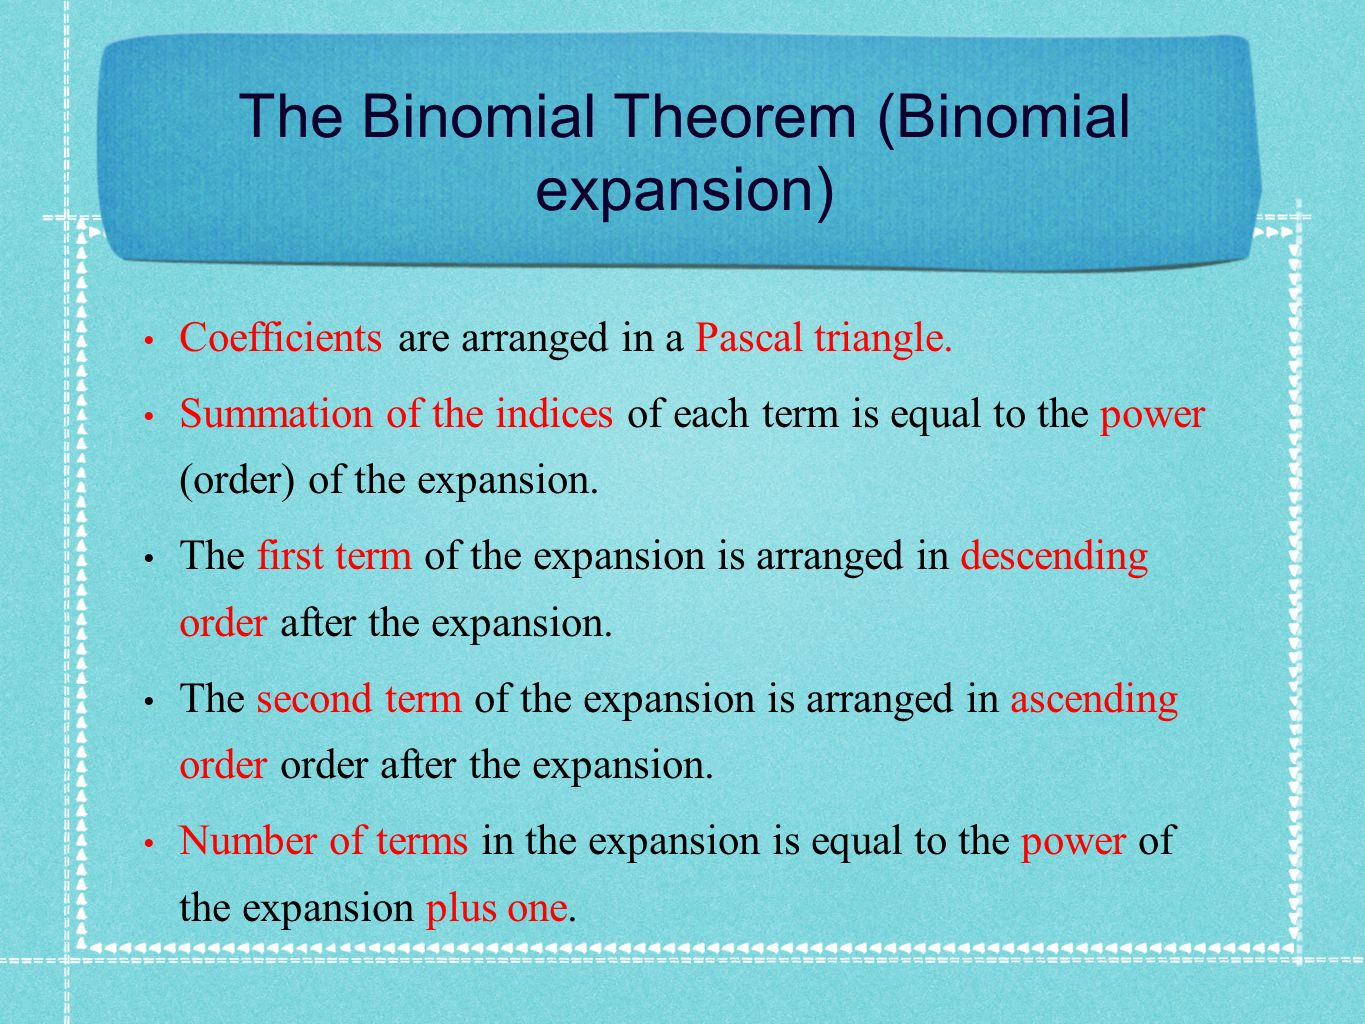 The Binomial Theorem (Binomial expansion)